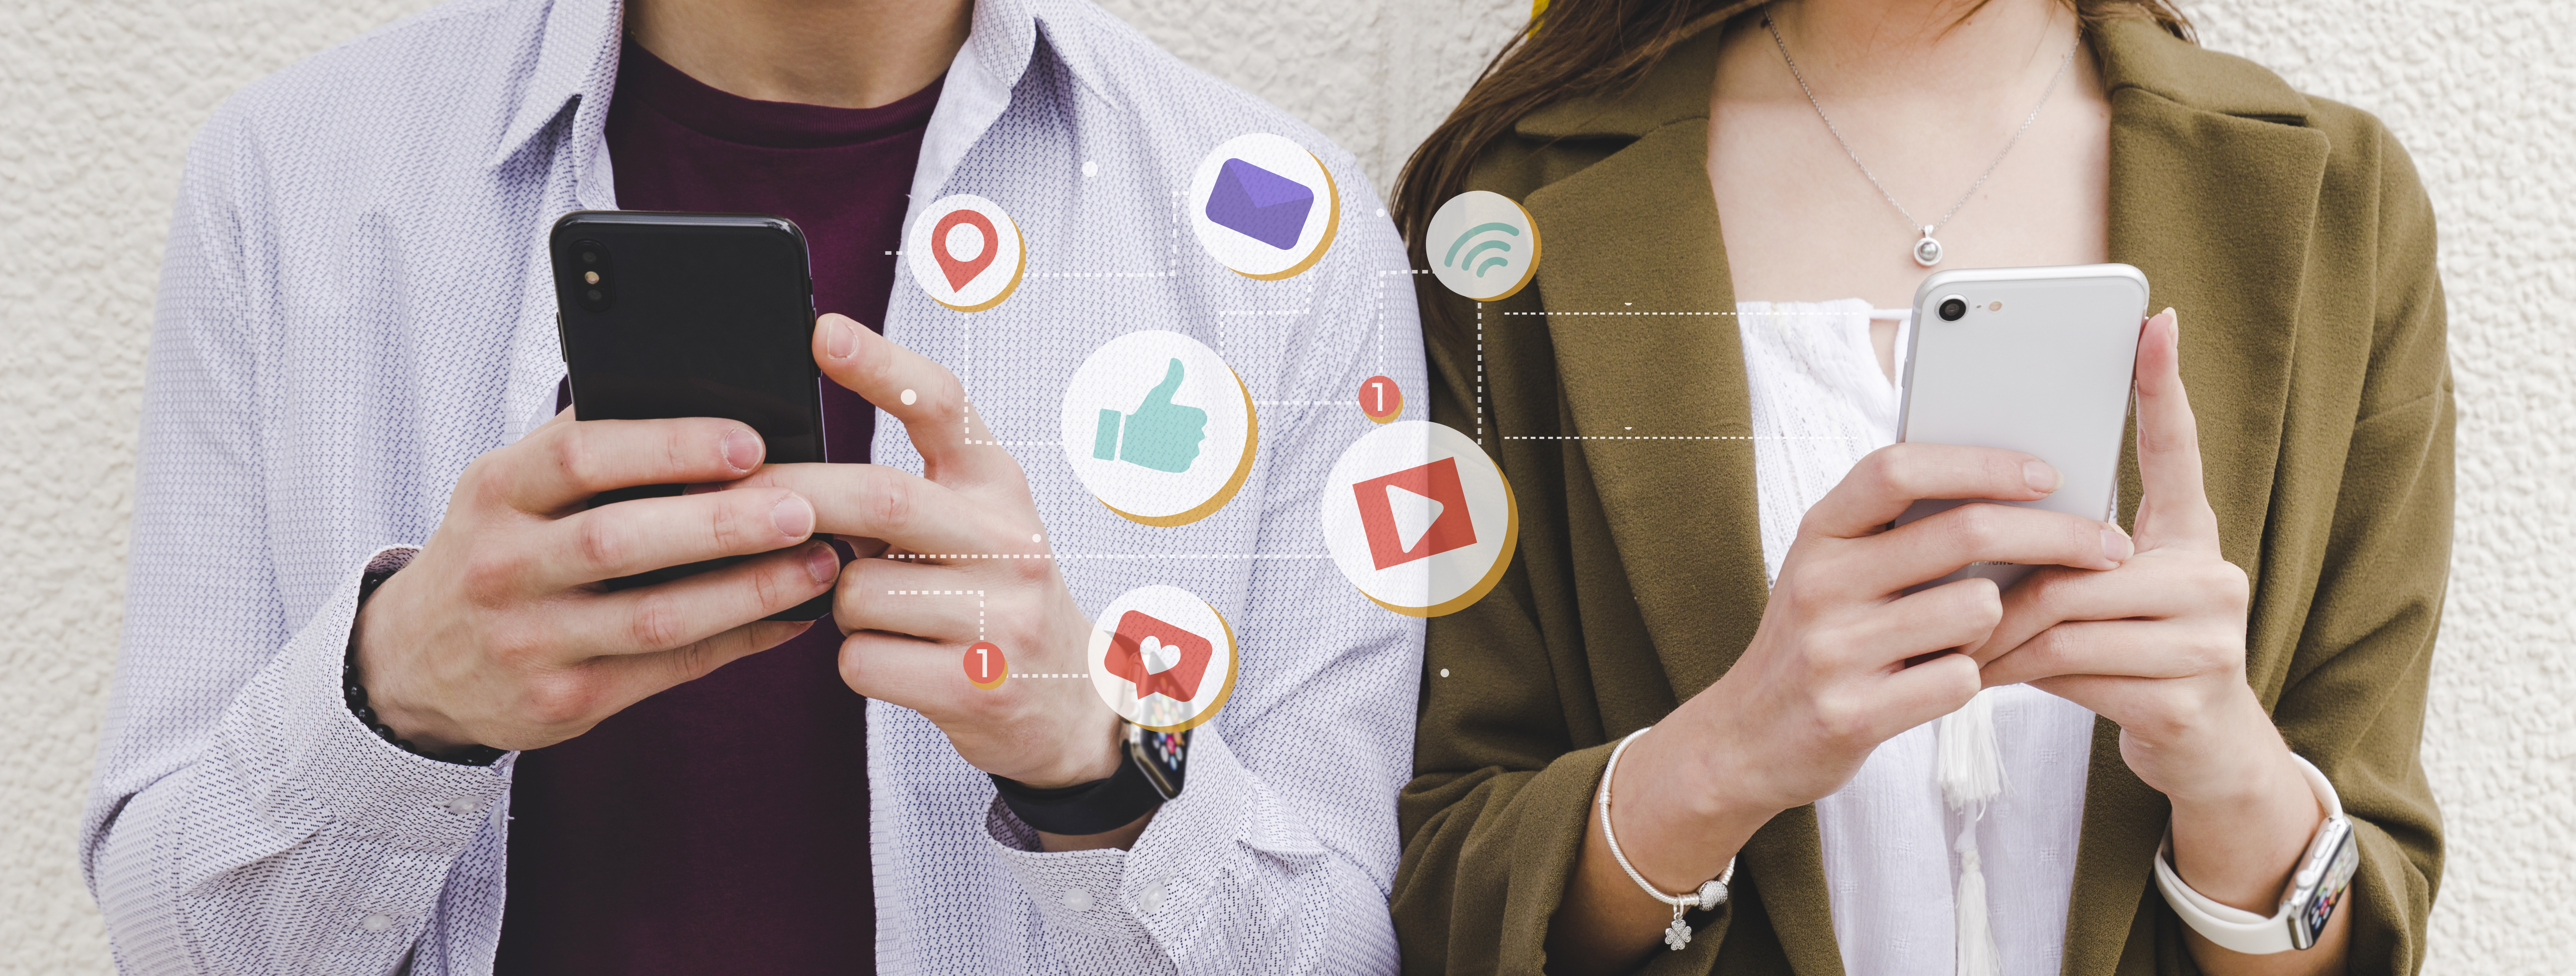 mobile-notification-icons-between-man-and-woman-using-cell-phone